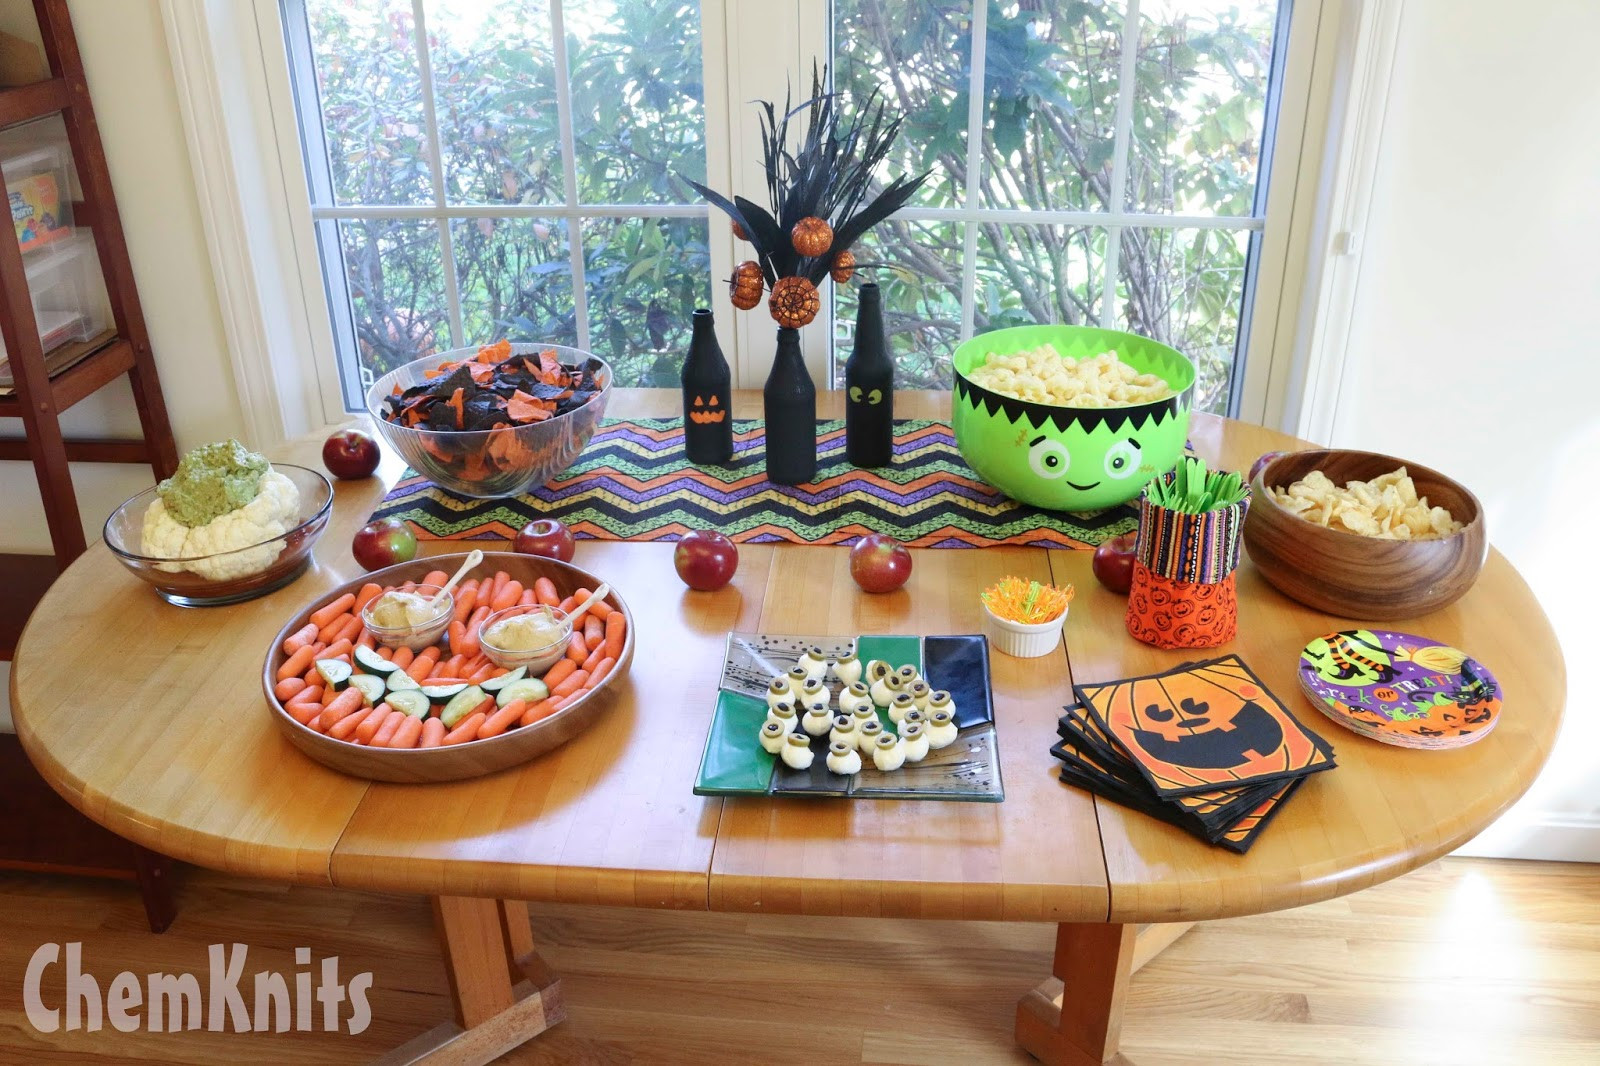 Best ideas about Halloween Theme Birthday Party . Save or Pin ChemKnits Lucky s Halloween Birthday Party Now.